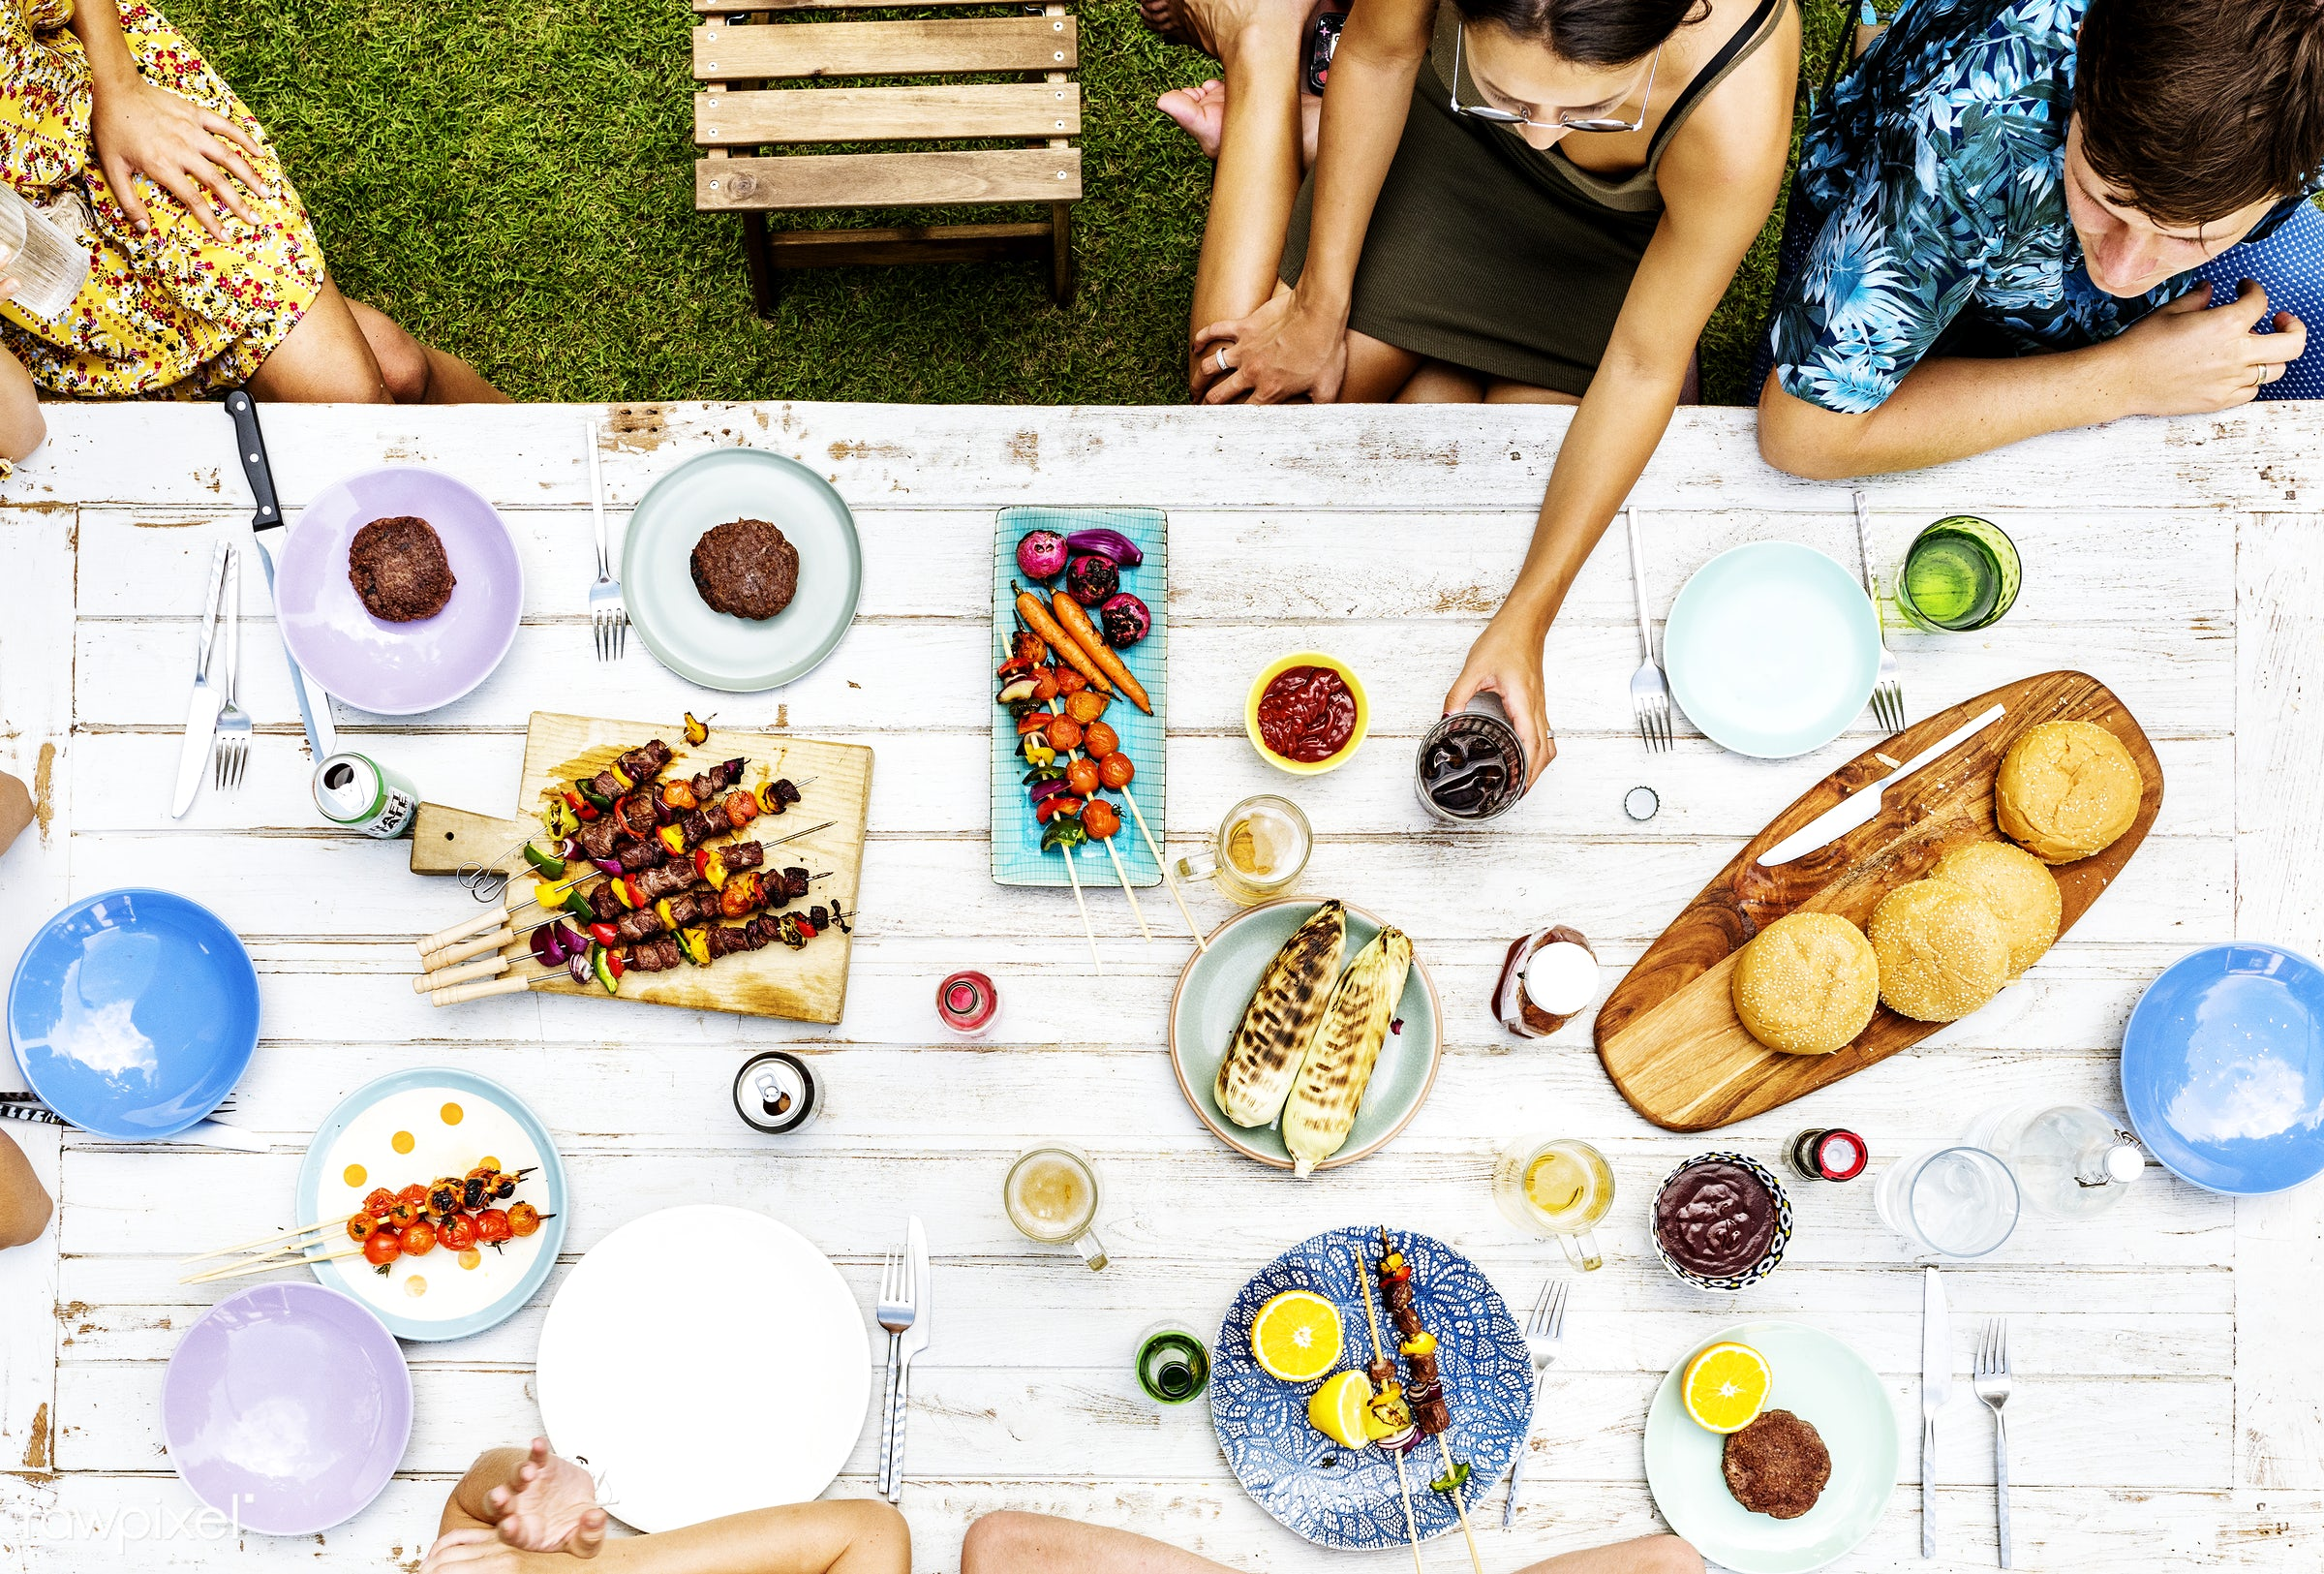 Group of friends having a yard party - relax, diverse, party, homemade, people, together, friends, hands, gathering, meats,...